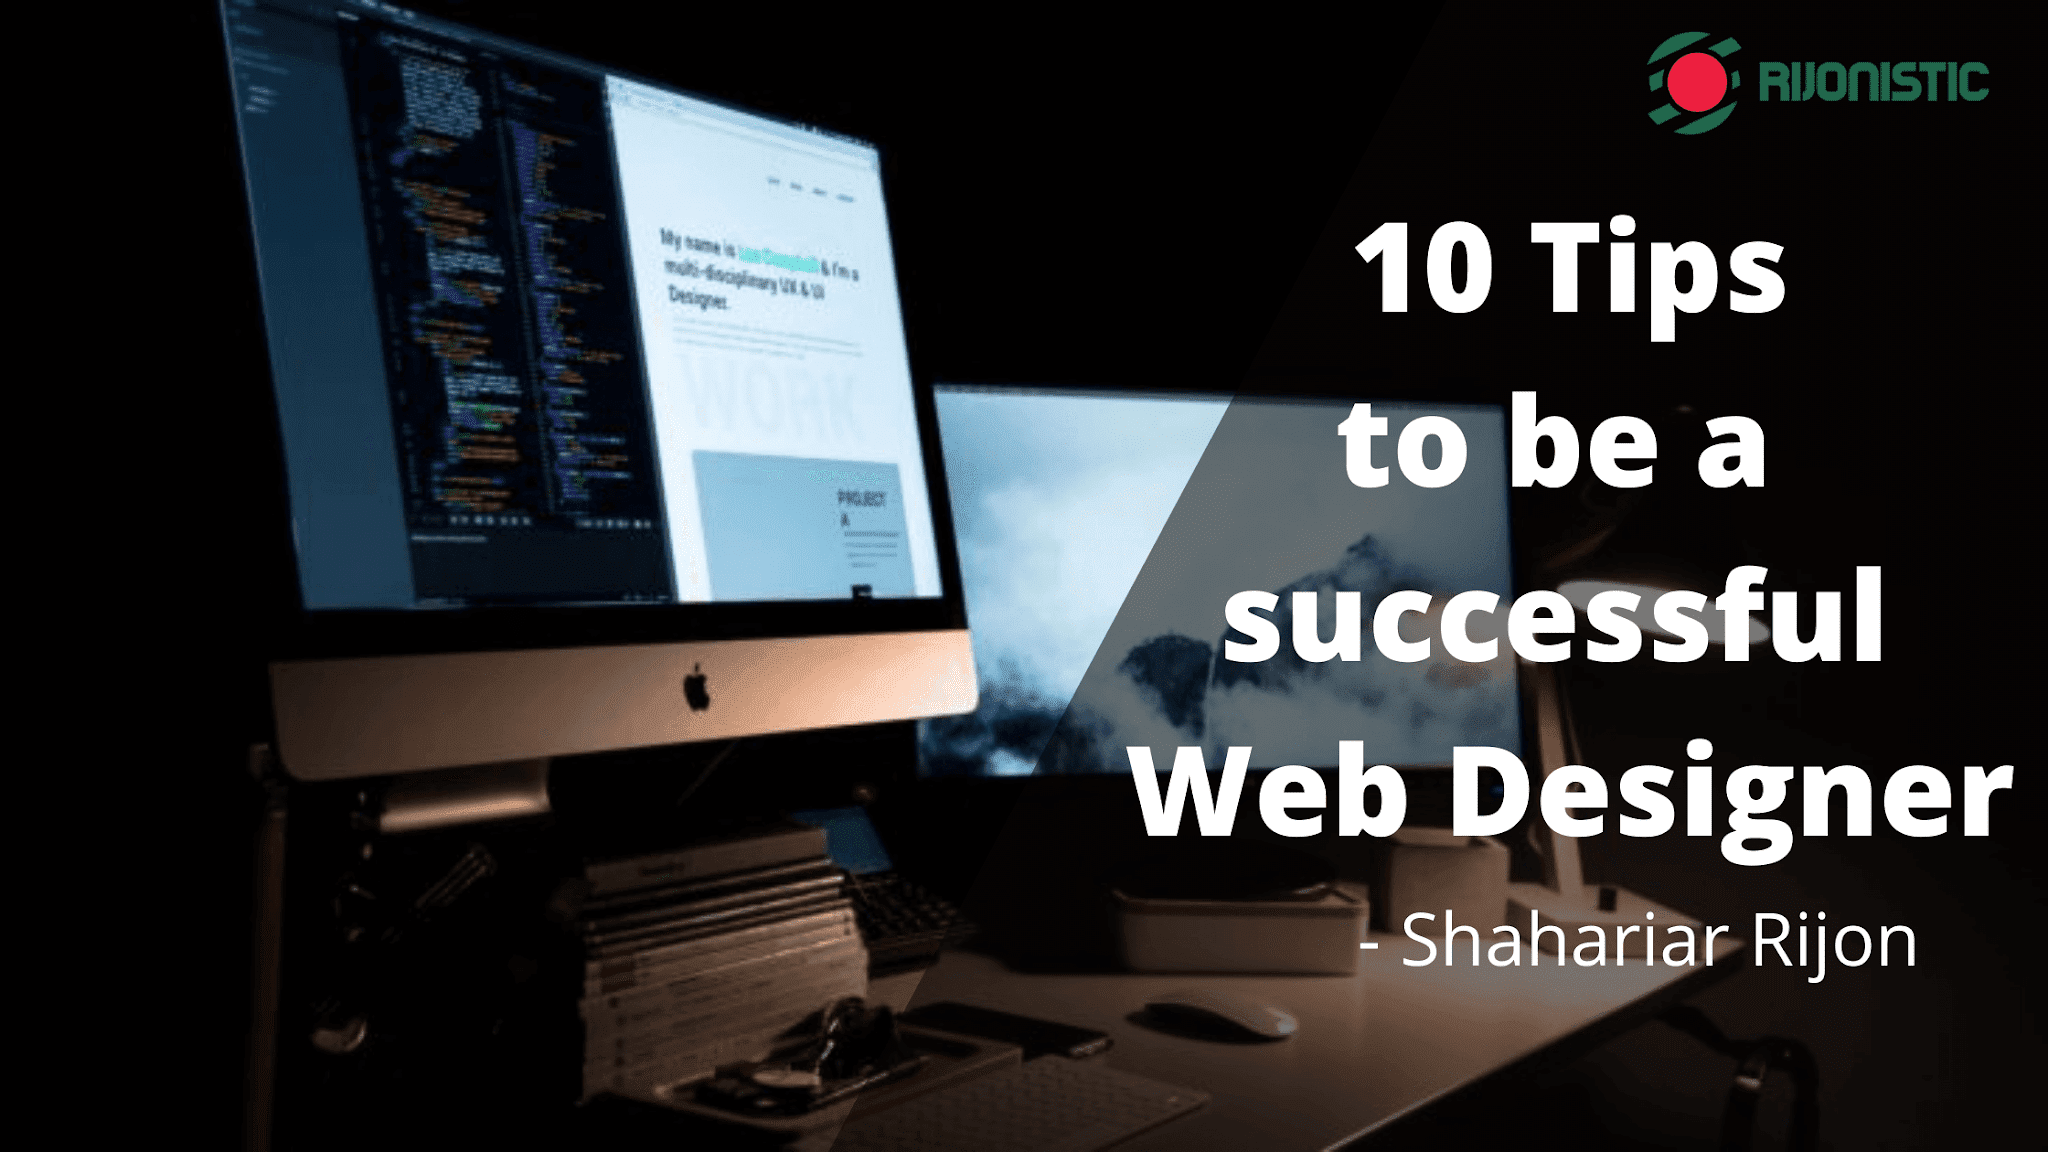 10 web design tips for beginners, Web Design Tips, How to be a succesfull web designer,